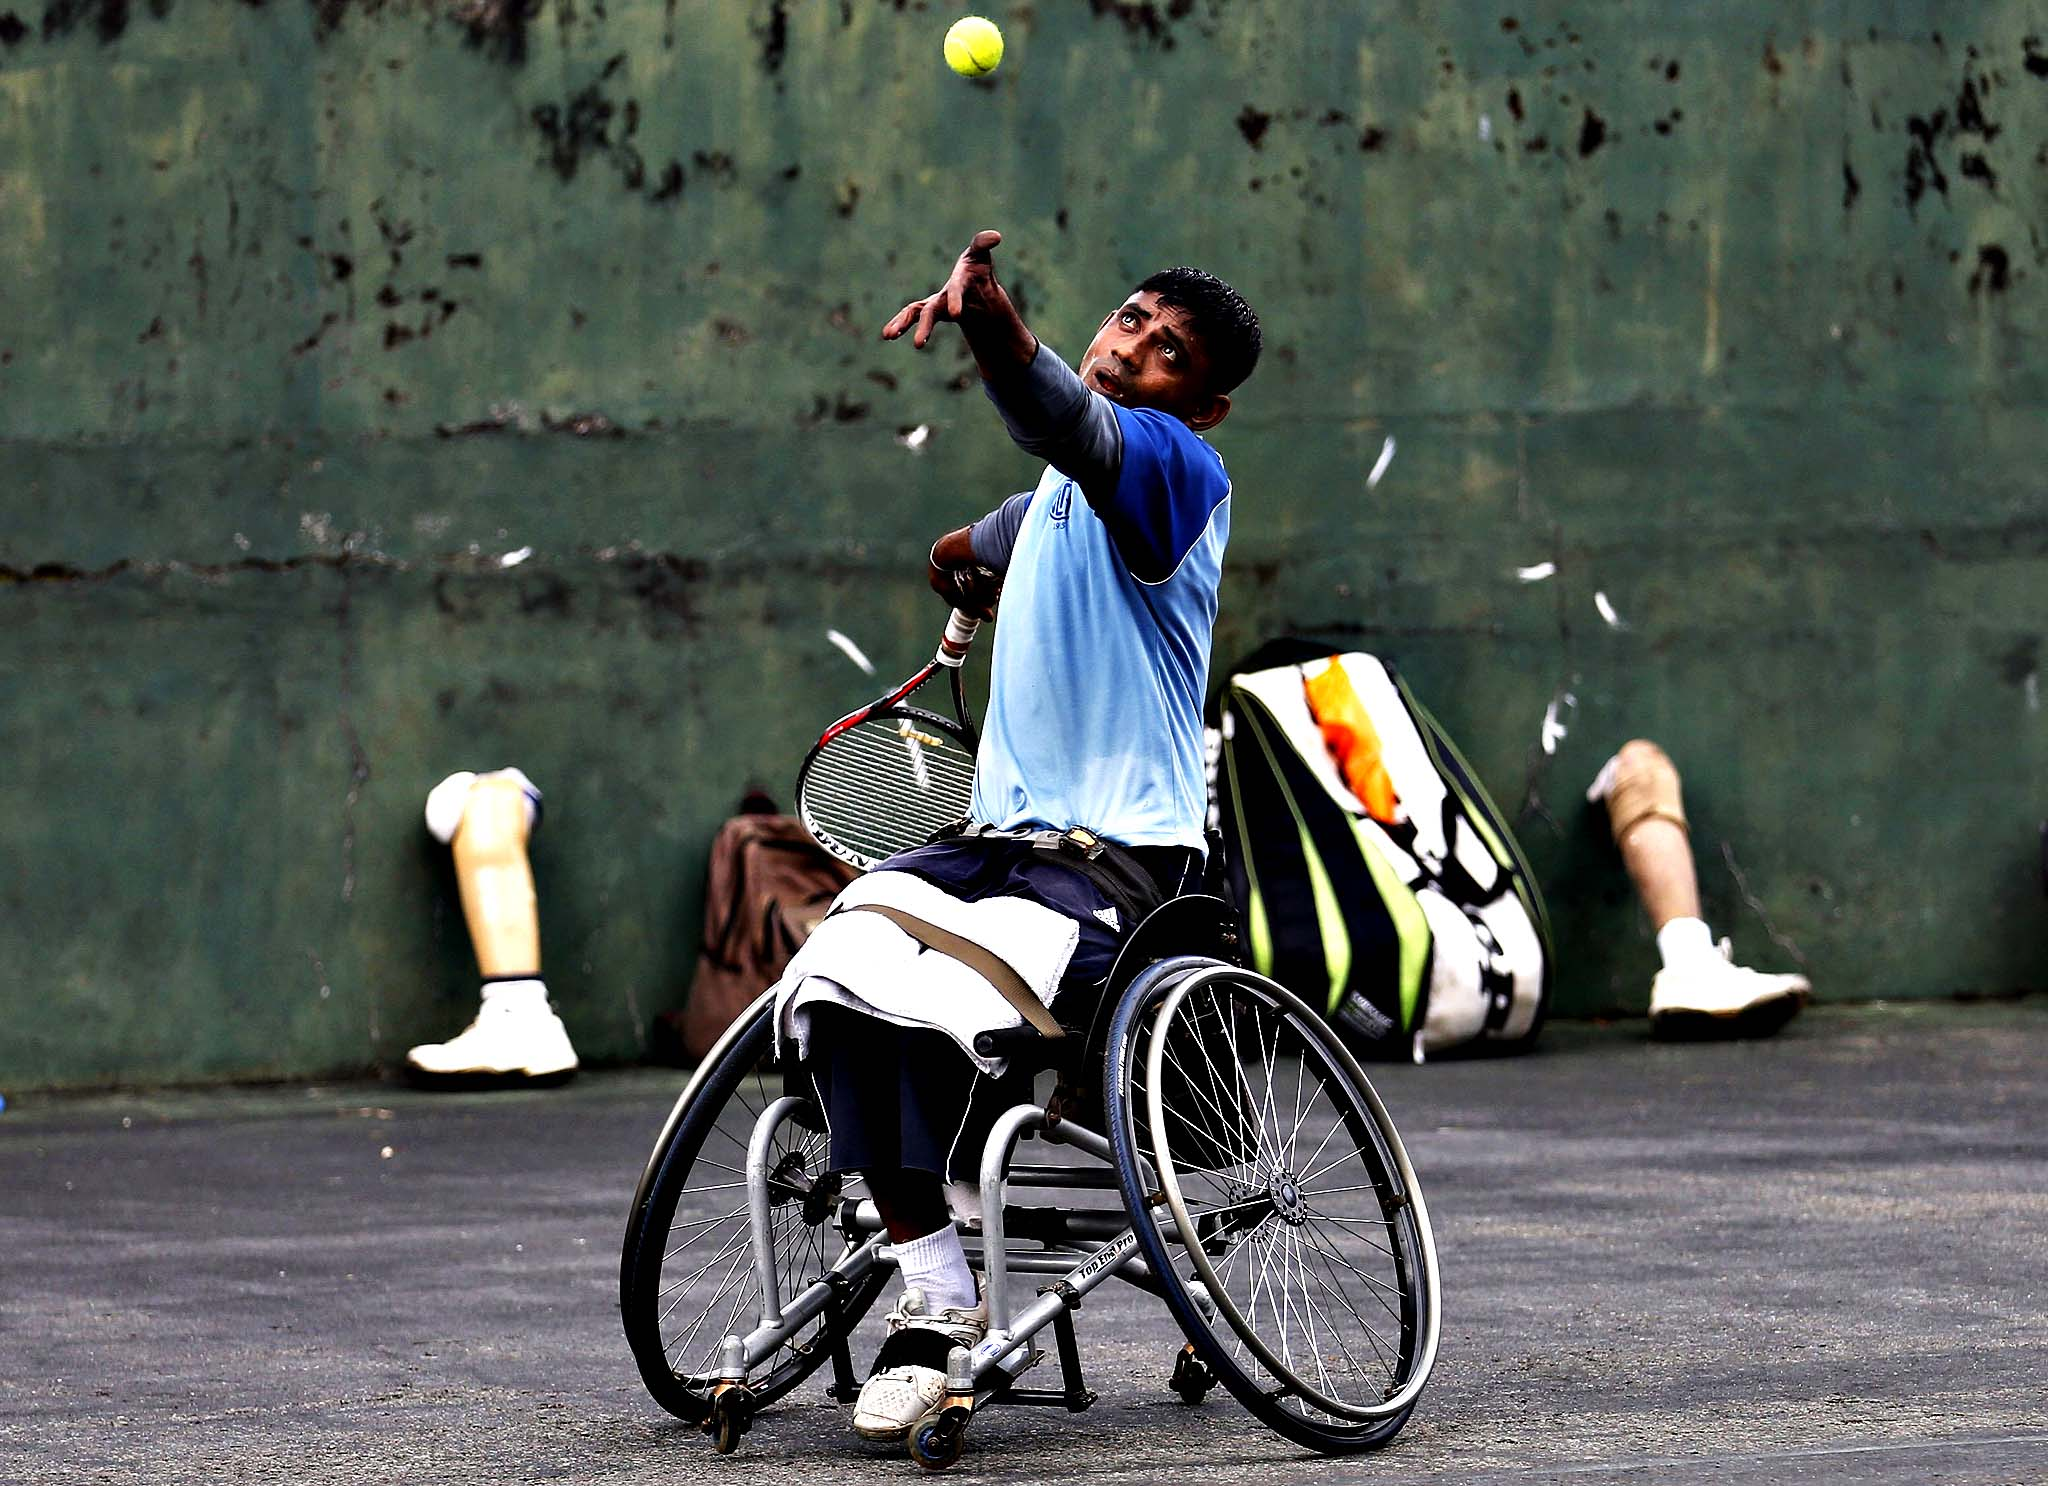 Gamini Dissanayake, 36, an army soldier and member of Sri Lanka's wheelchair tennis national team serves during a practice session in Colombo May 6, 2014. The Sri Lankan national wheelchair team is made up of active armed forces members who lost their limbs during active duty.